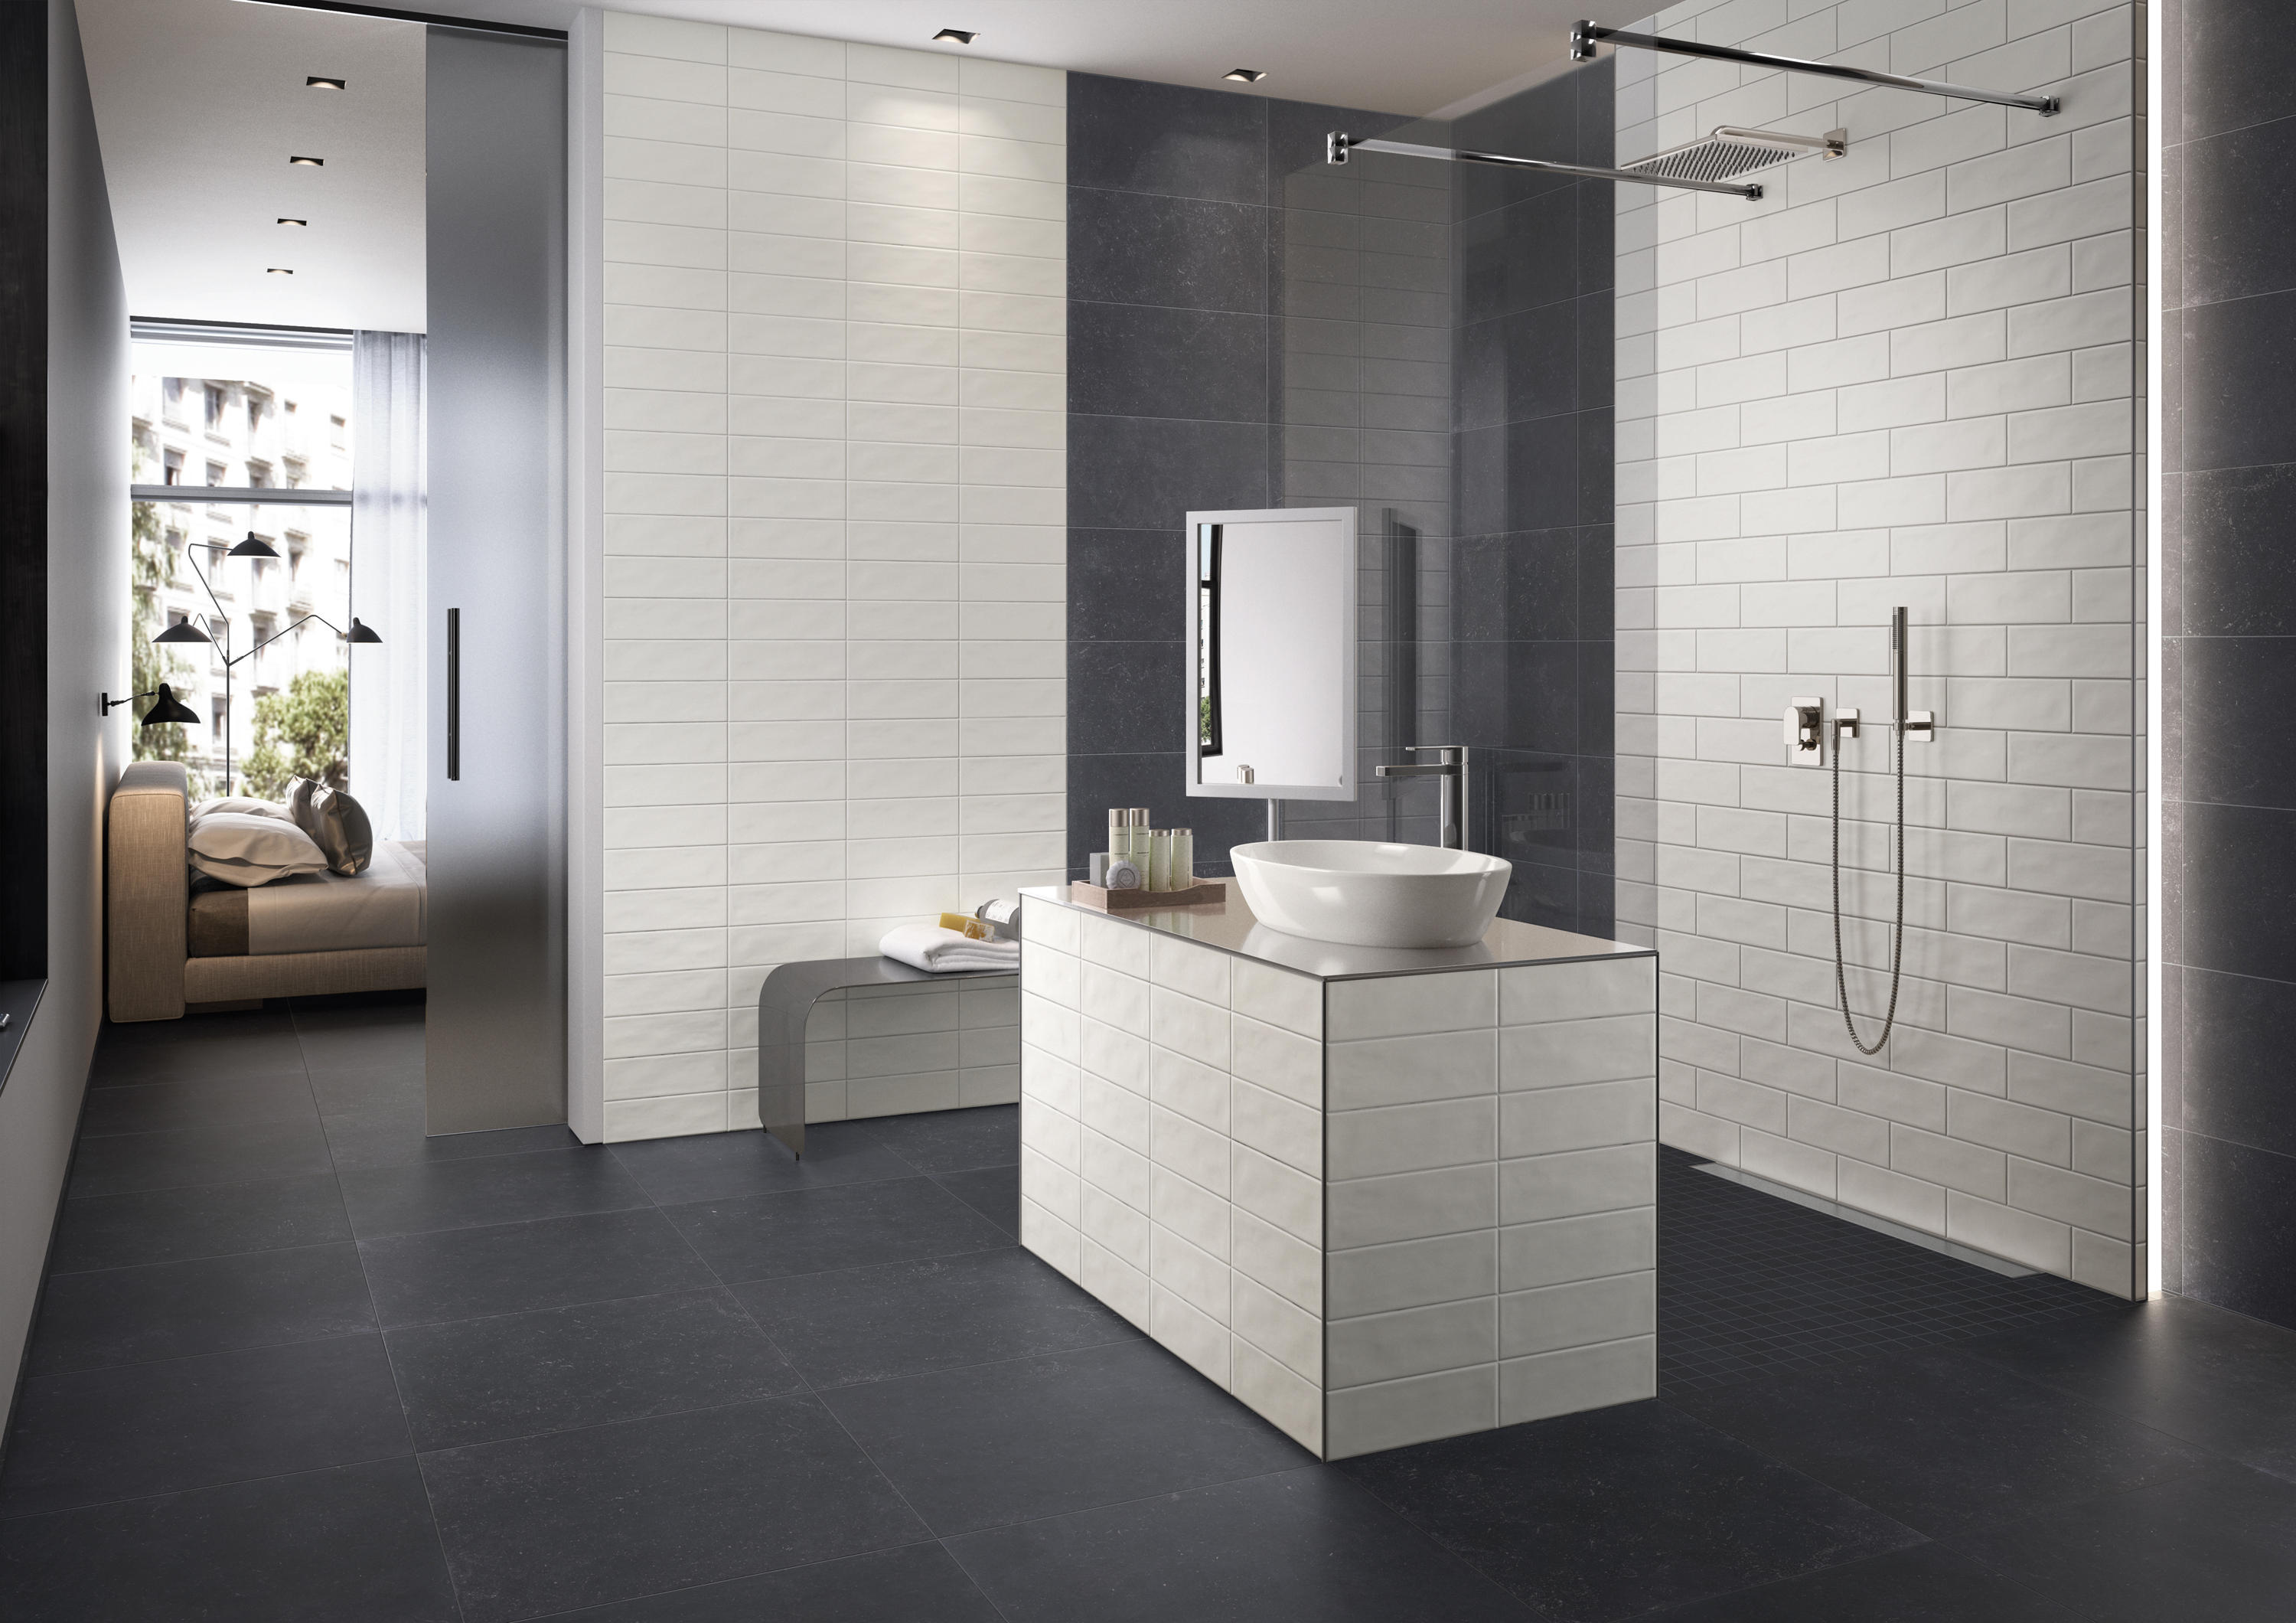 urbantone li20 ceramic tiles from villeroy boch